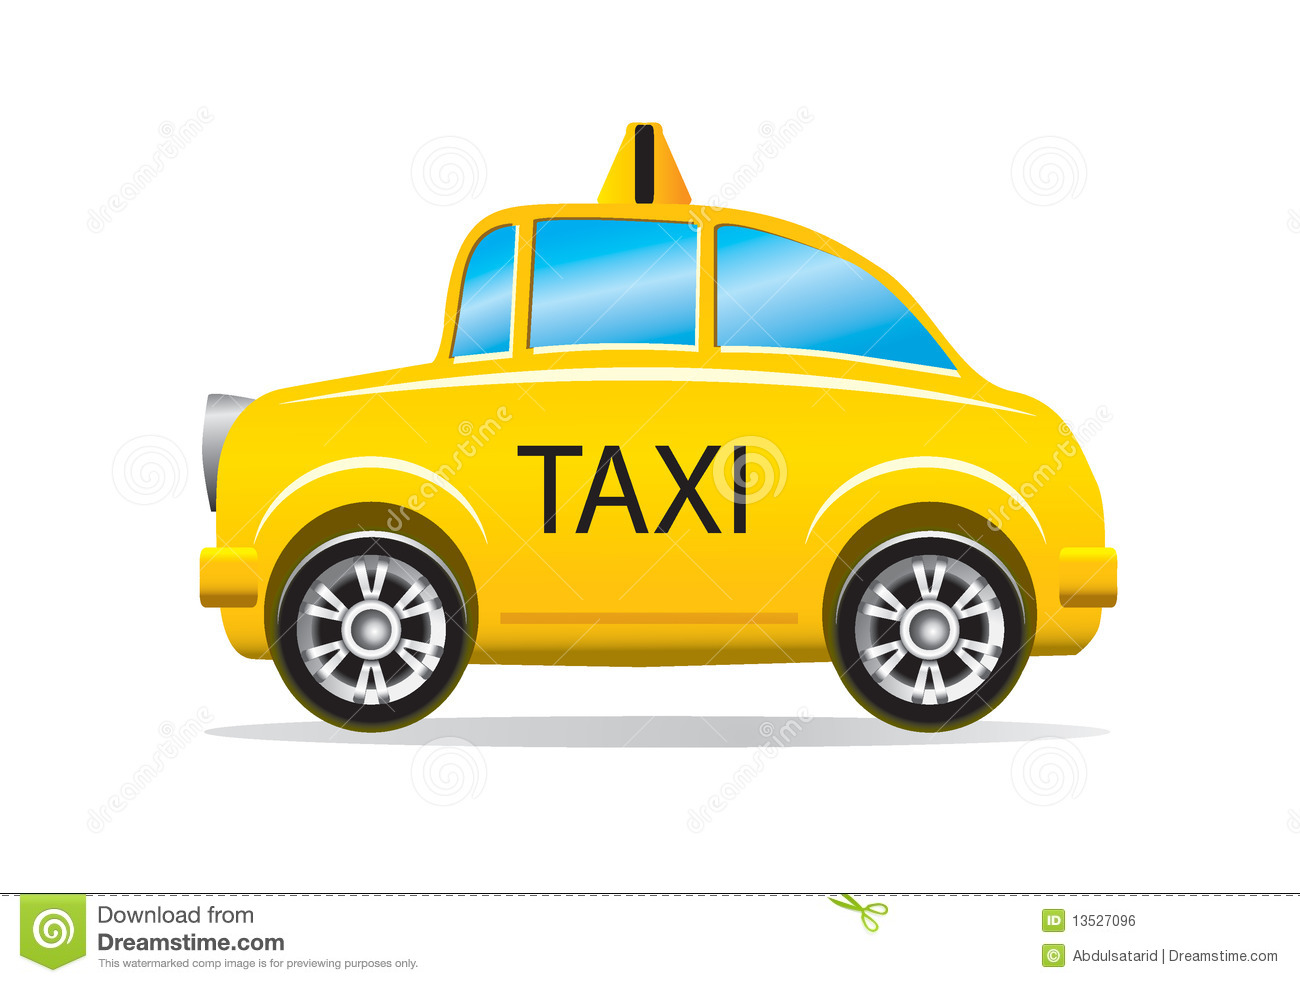 Taxi Stock Illustrations.